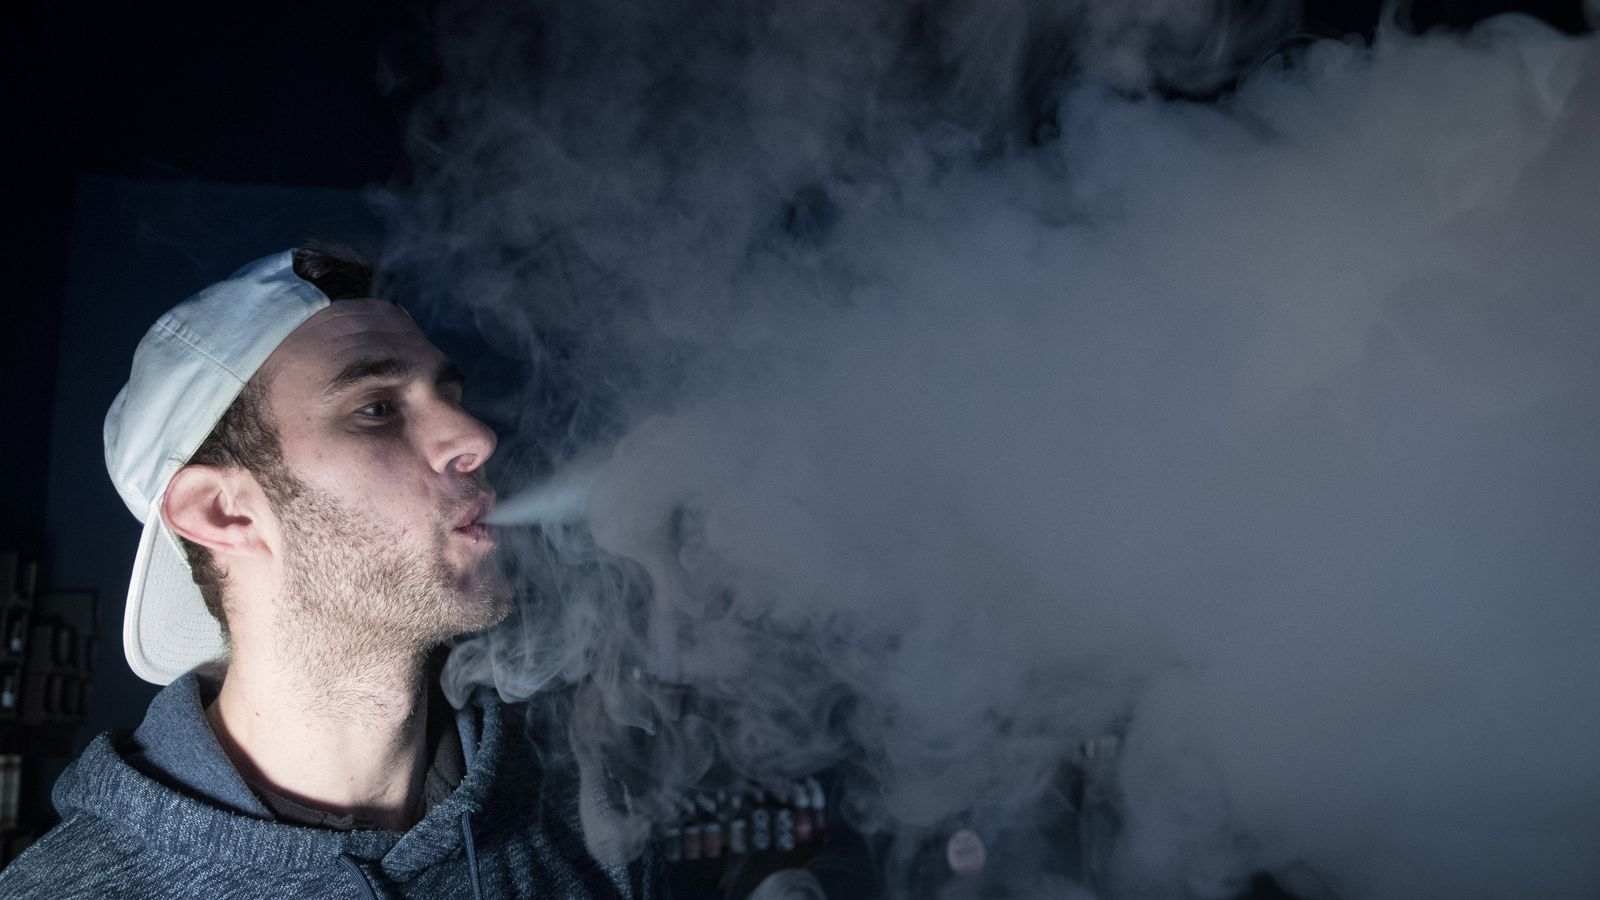 Vaping might increase your risk of heart disease, just ...